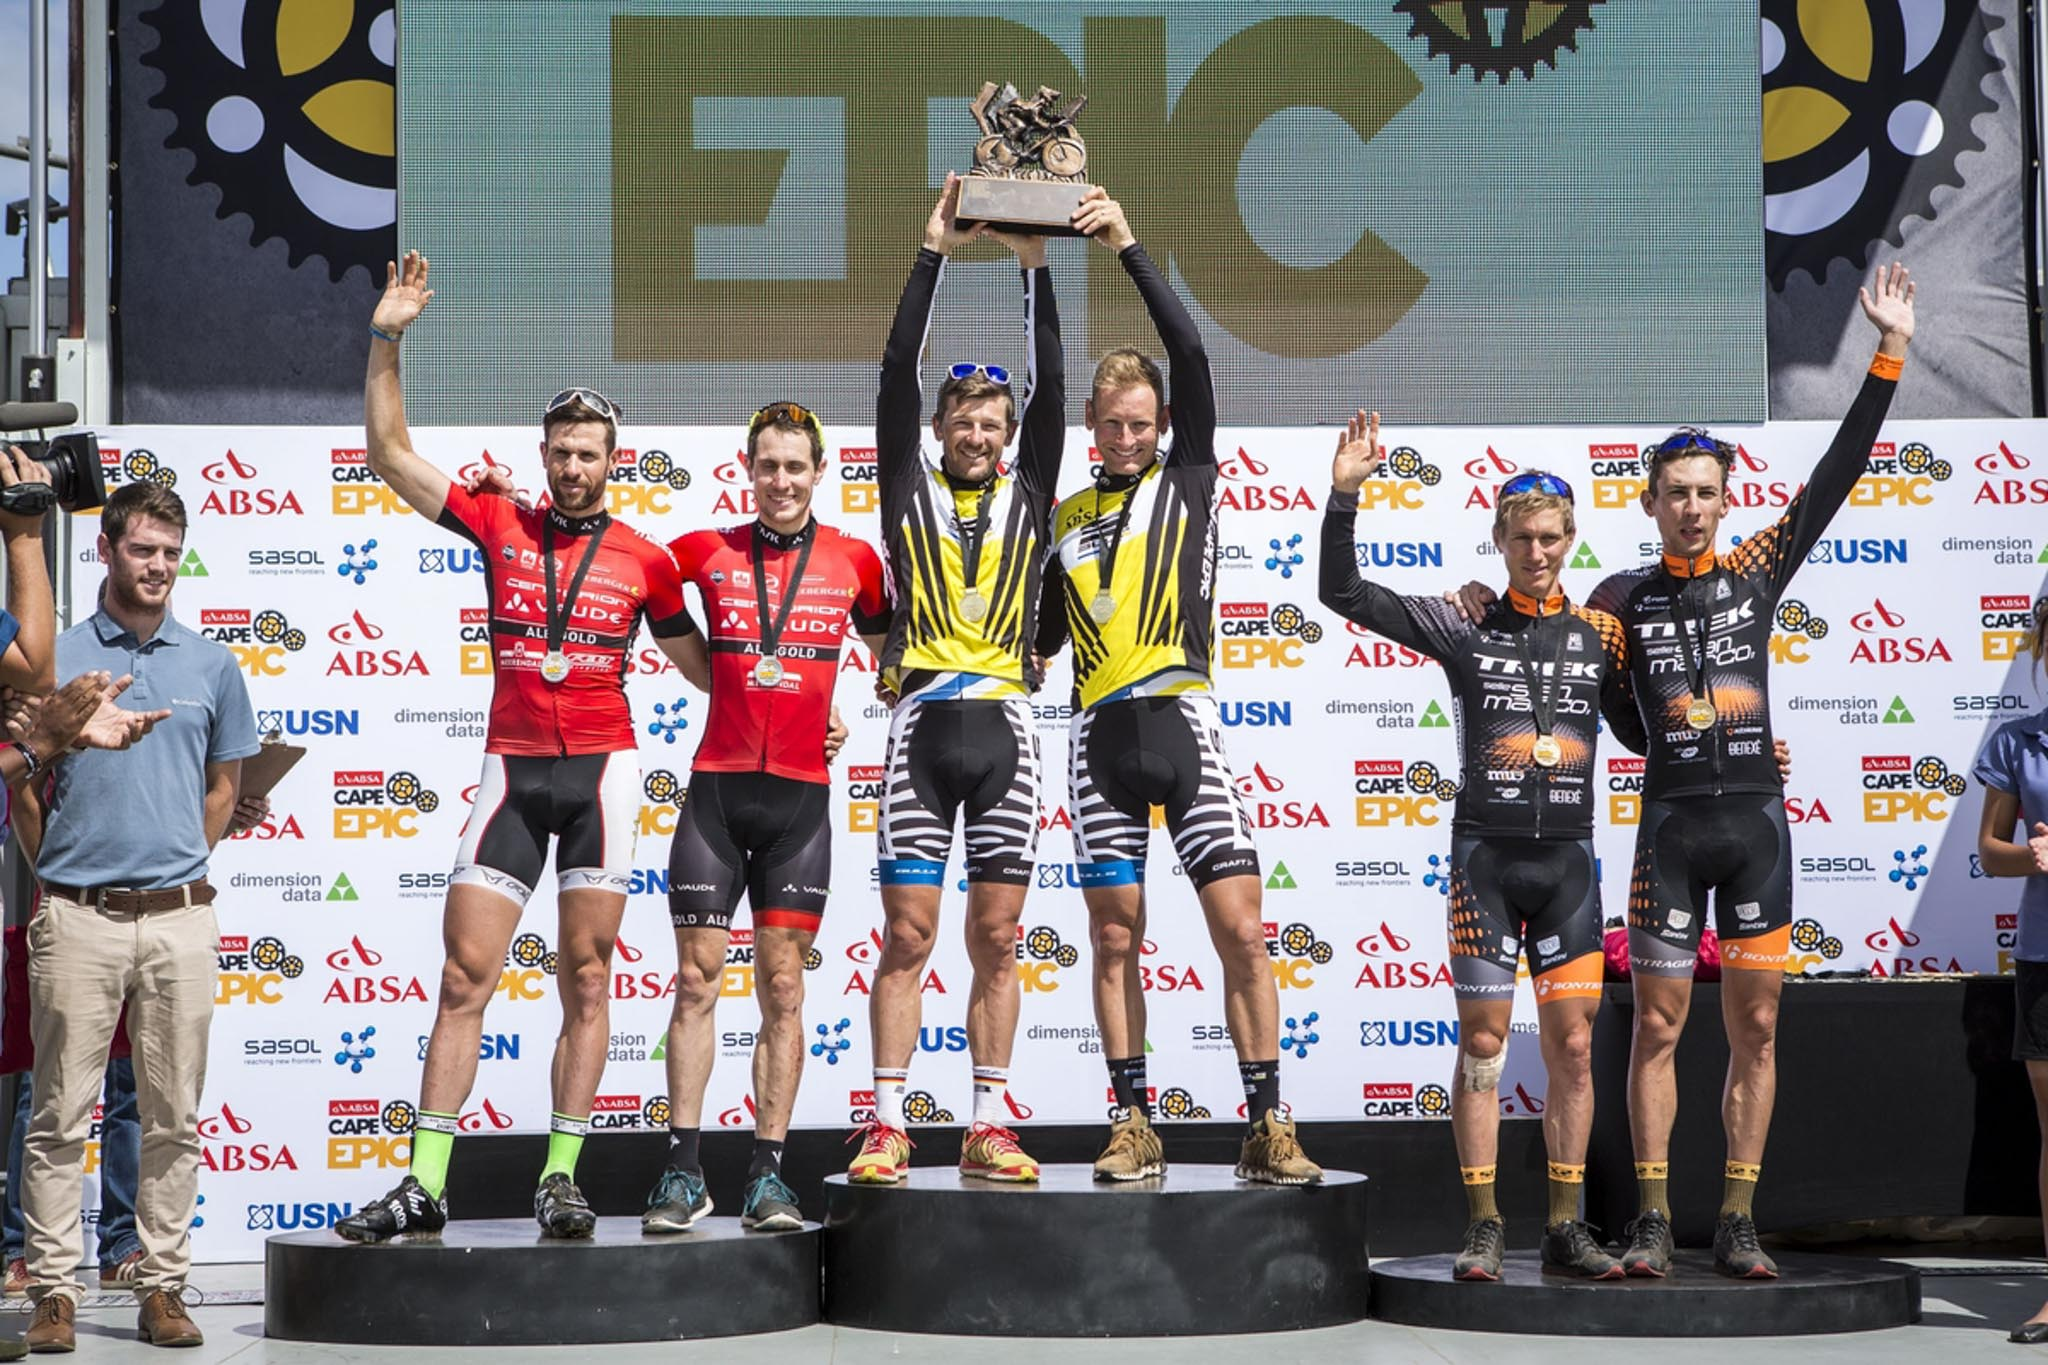 The overall mens podium of (L) Nicola Rohrbach and Matthias Pfommer of Team Centurion Vaude by Meerendal 2, (c) Karl Platt and Urs Huber of Team Bulls 1 and (R) Samuele Porro and Damiano Ferraro of Team Trek-Selle San Marco A during the final stage (stage 7) of the 2016 Absa Cape Epic Mountain Bike stage race from Boschendal in Stellenbosch to Meerendal Wine Estate in Durbanville, South Africa on the 20th March 2016 Photo by Nick Muzik/Cape Epic/SPORTZPICS PLEASE ENSURE THE APPROPRIATE CREDIT IS GIVEN TO THE PHOTOGRAPHER AND SPORTZPICS ALONG WITH THE ABSA CAPE EPIC ace2016